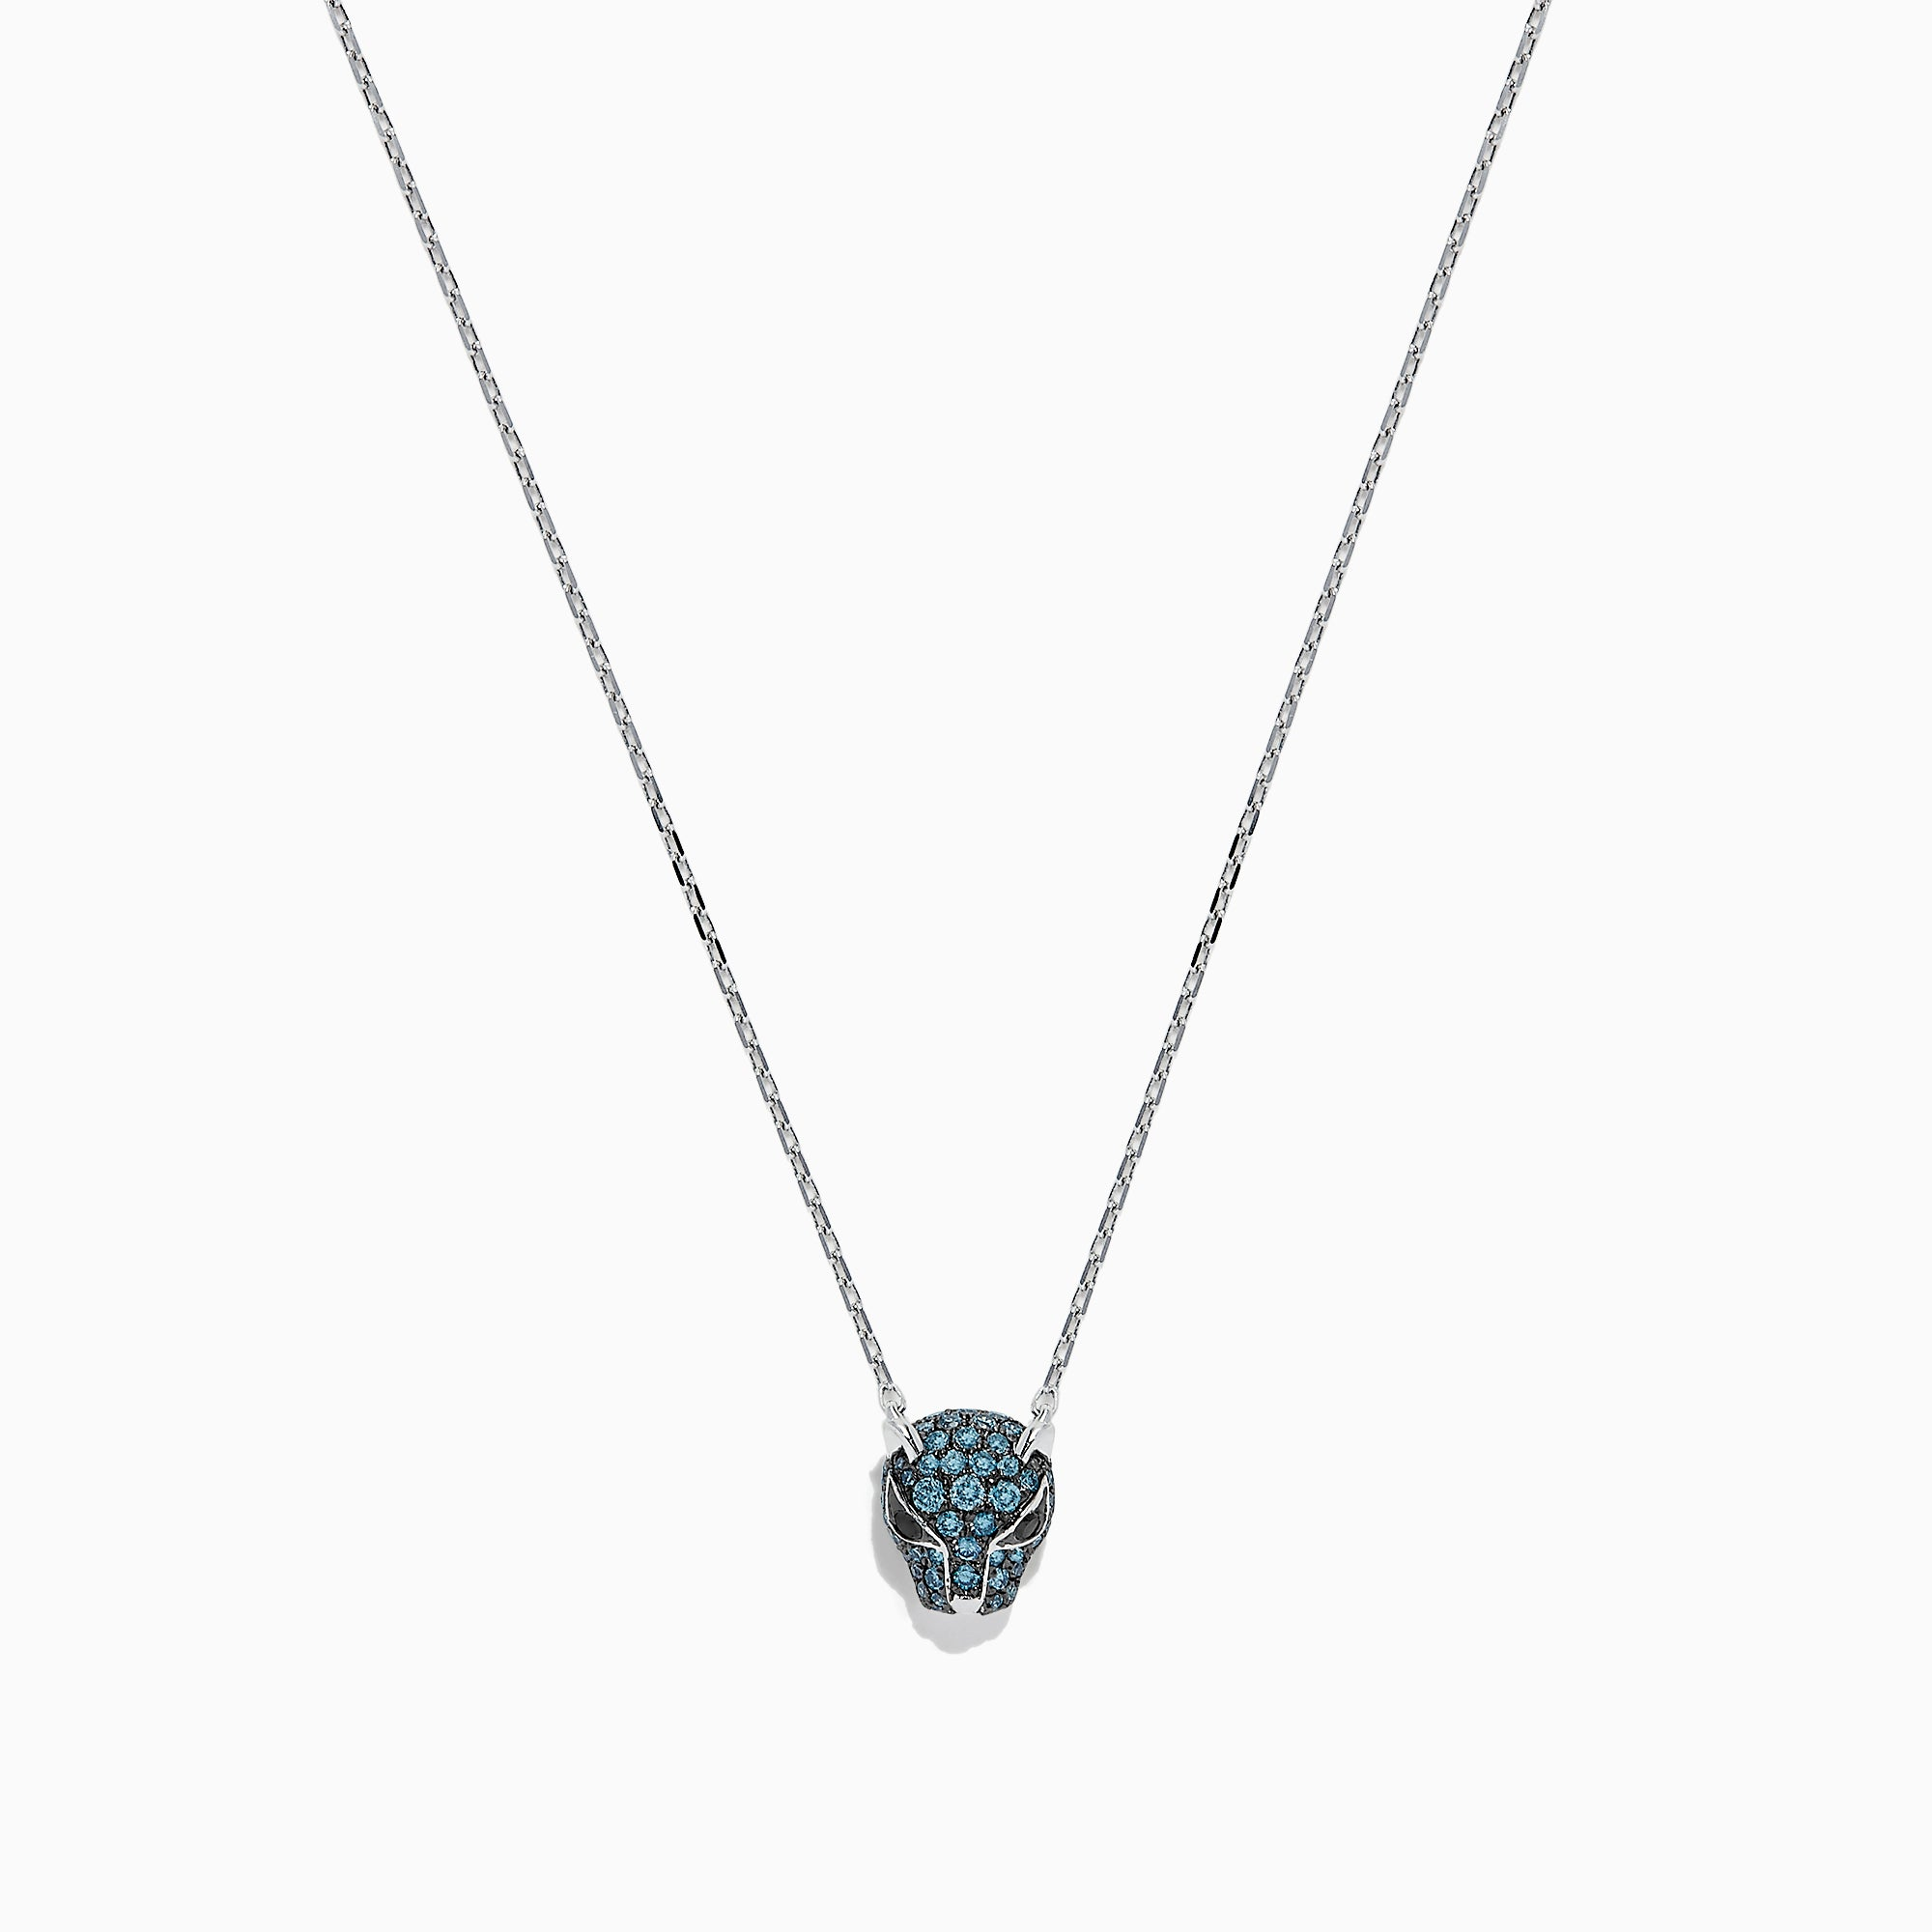 Effy Signature 14K White Gold Blue Diamond Mini Panther Necklace, 0.37 TCW